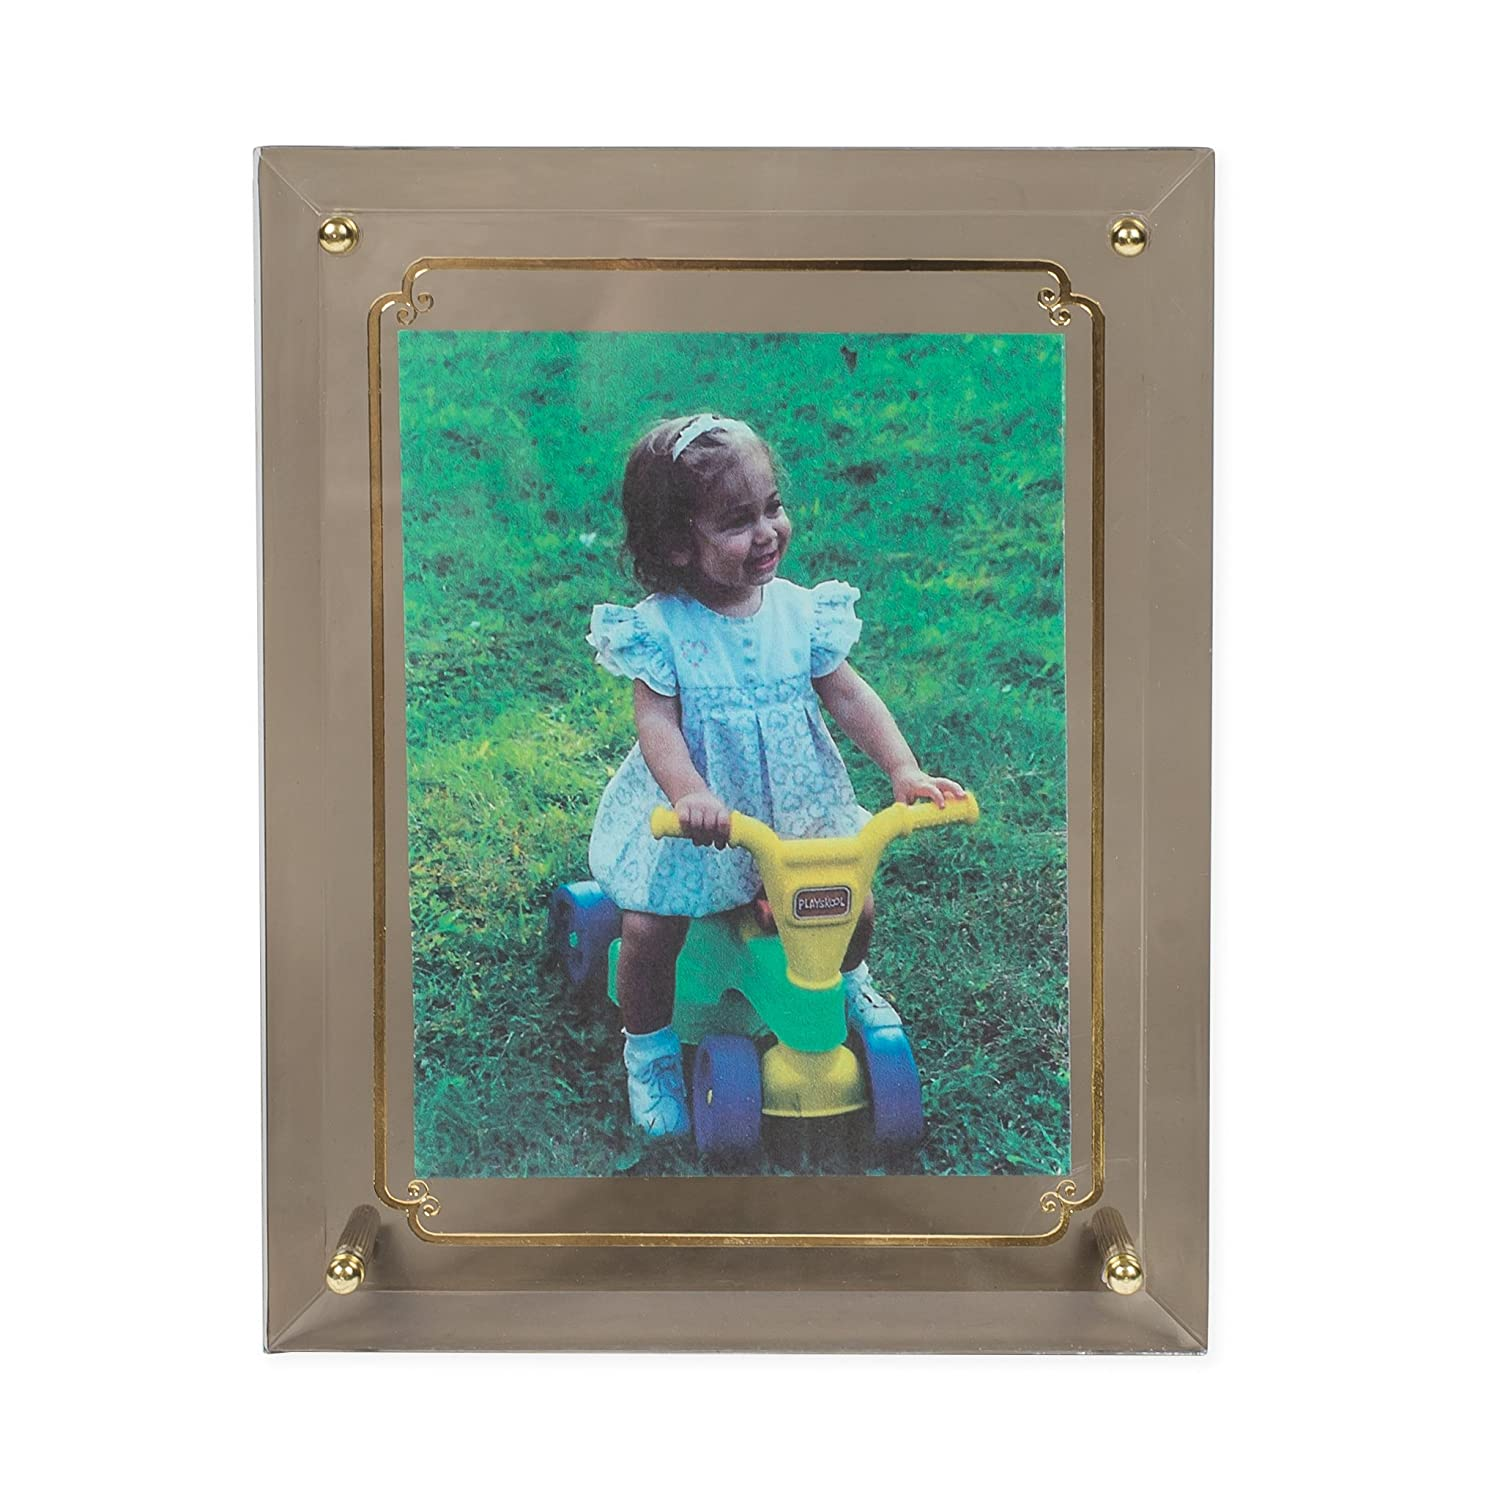 Beveled Edge with Gold Tone Accents Musical Photo Frame Plays Music of the Night